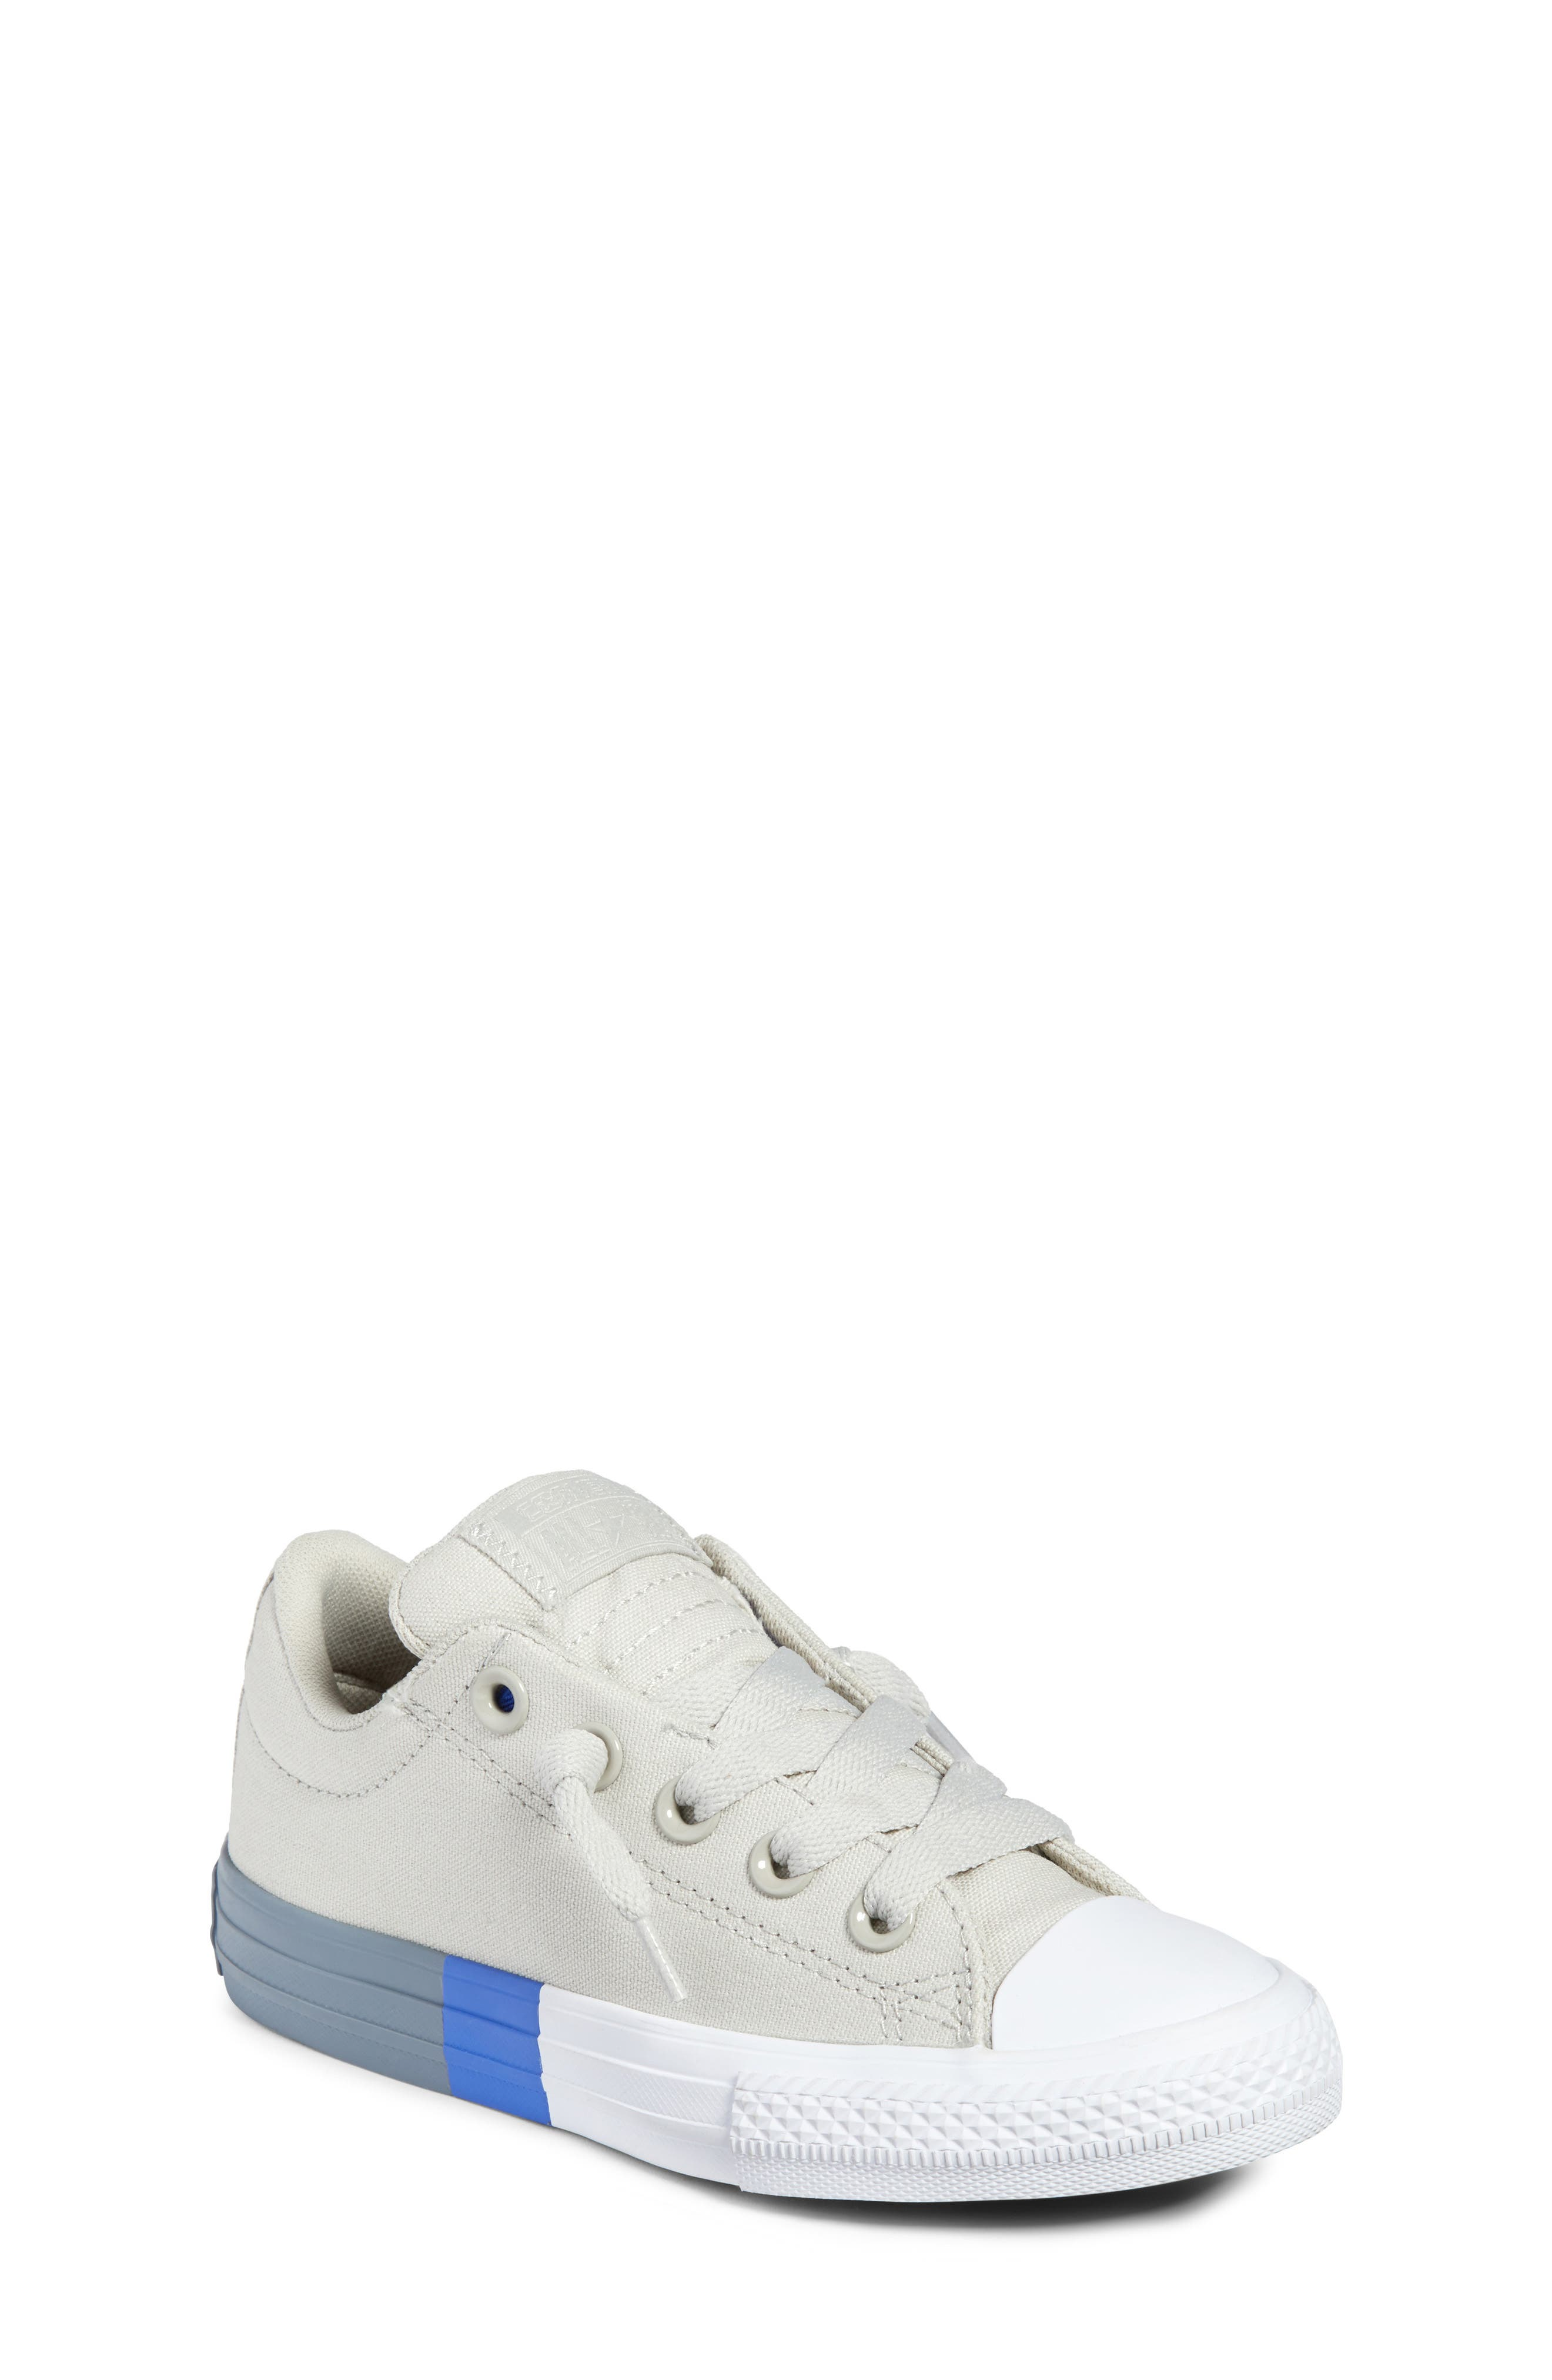 Chuck Taylor<sup>®</sup> All Star<sup>®</sup> Colorblock Street Sneaker,                             Main thumbnail 1, color,                             081